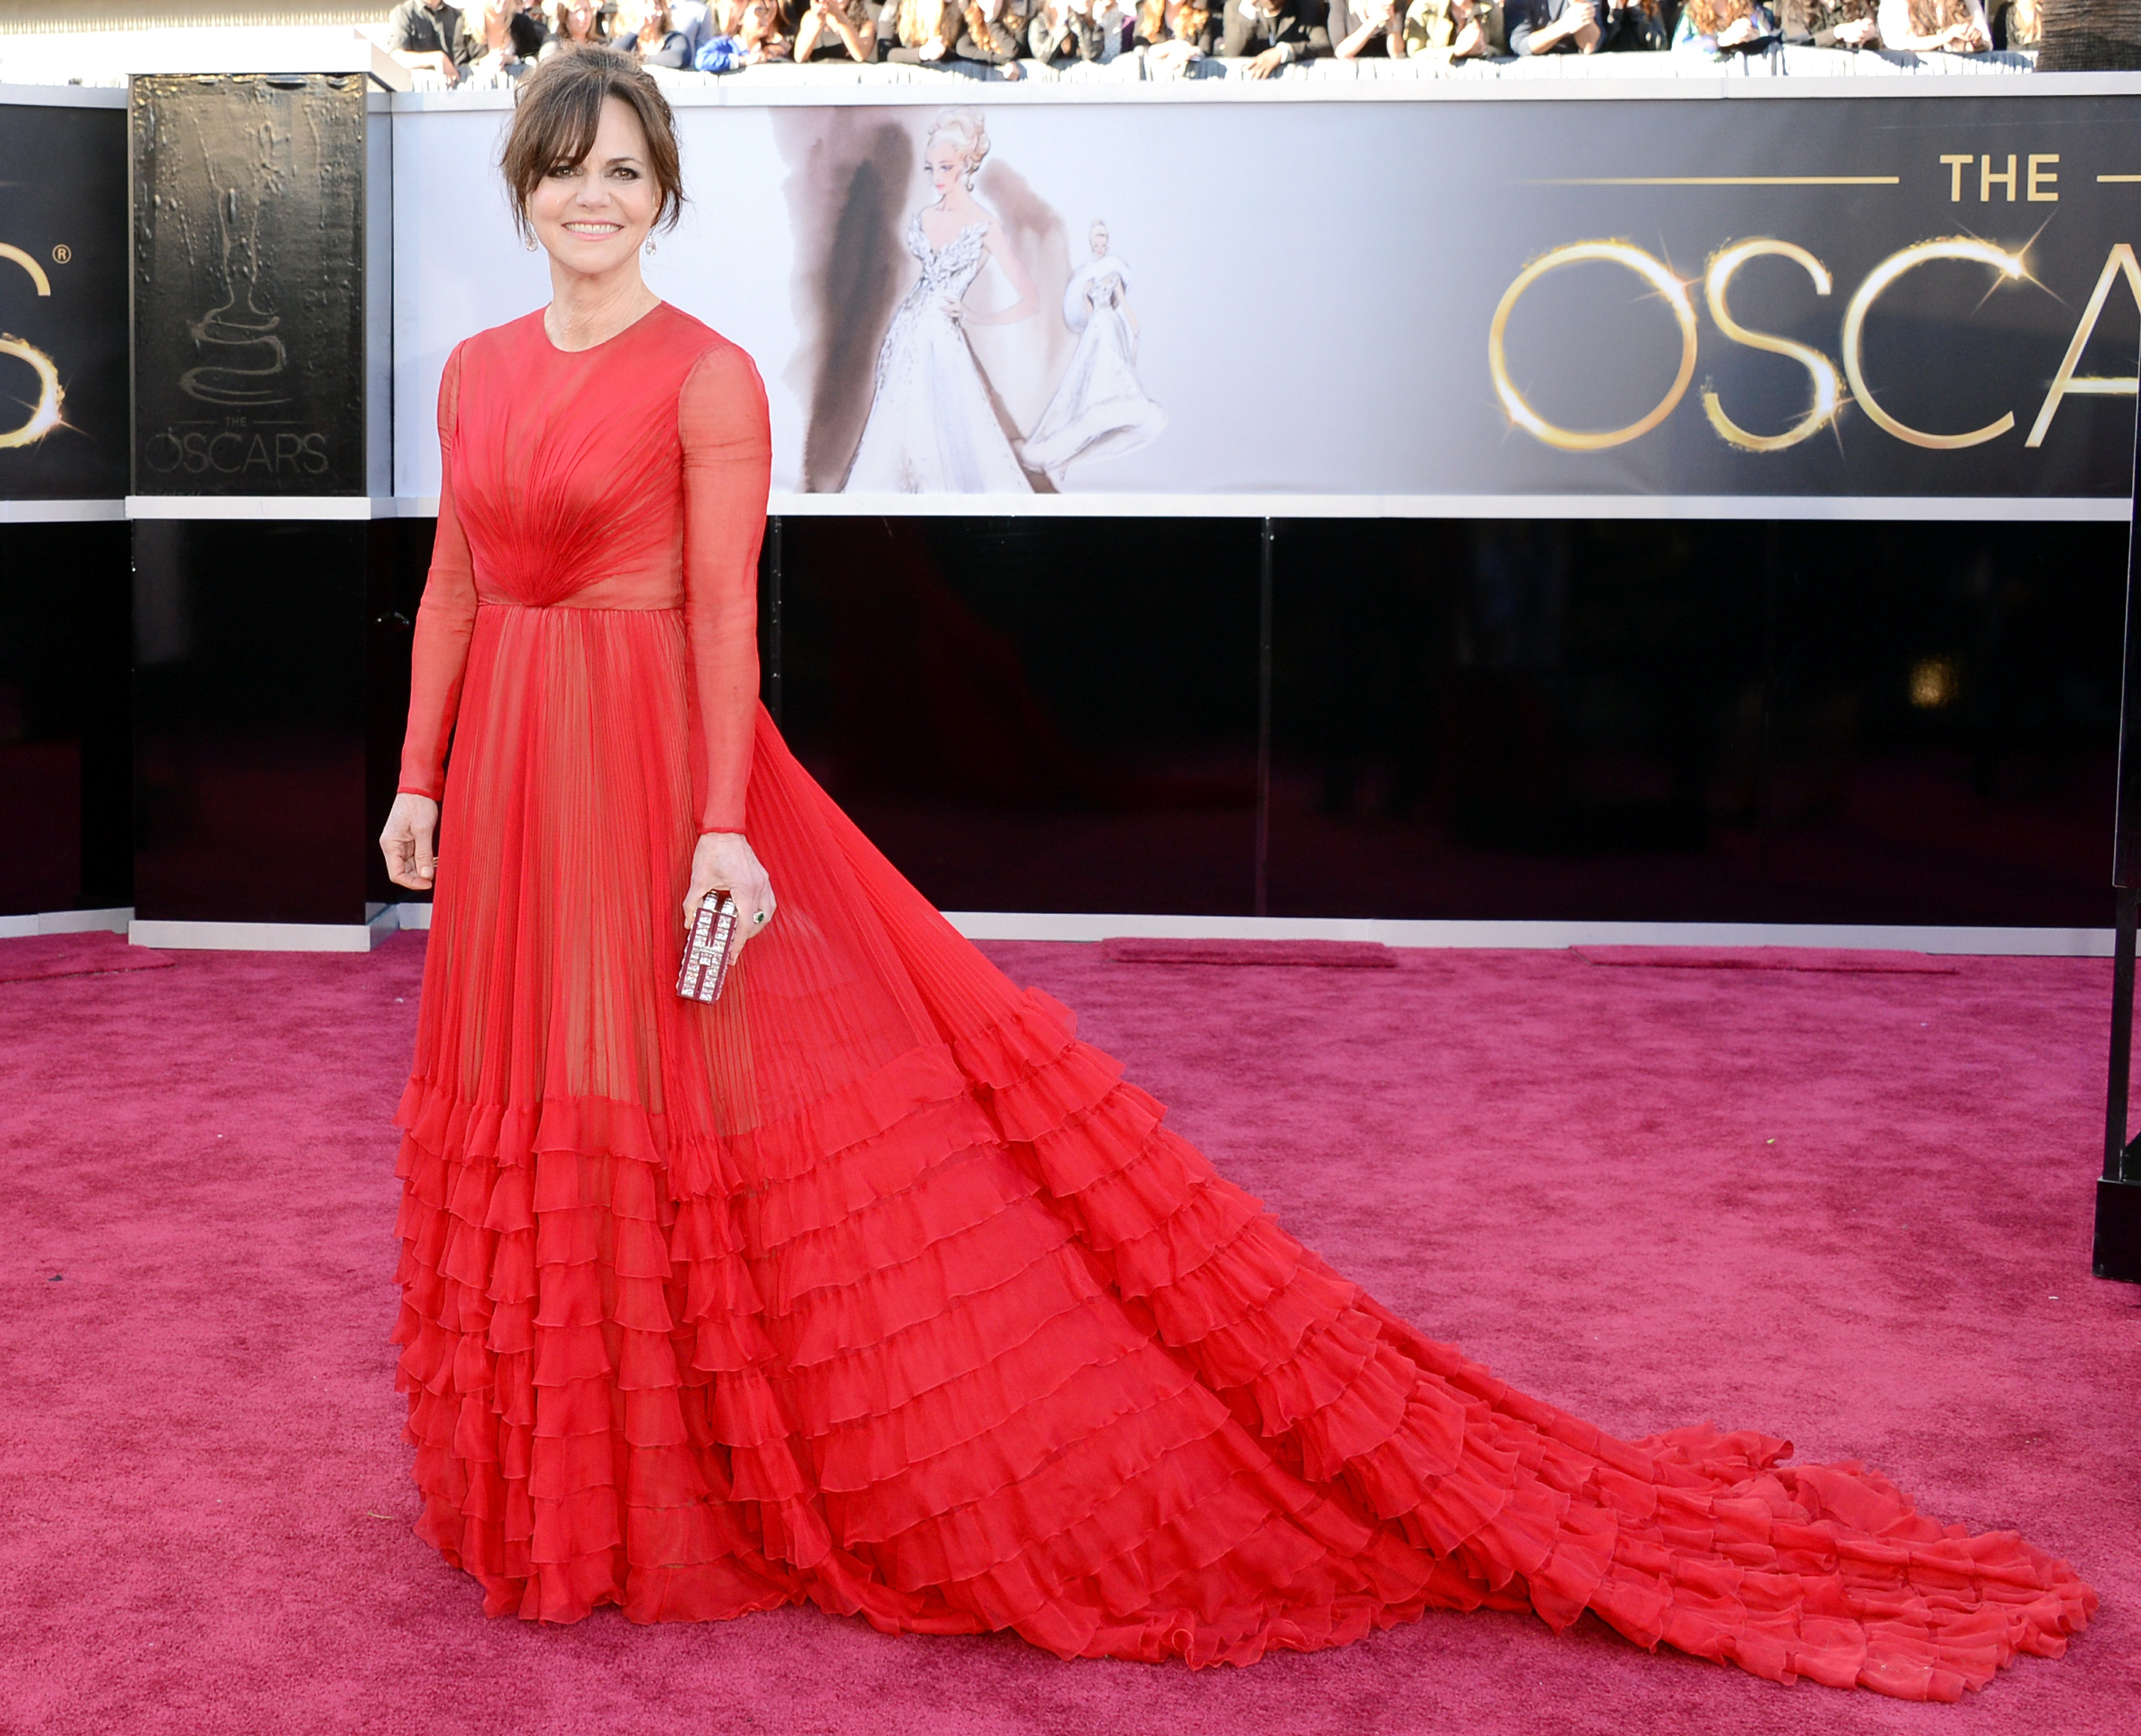 Sally Field, nominated for best supporting actress in Lincoln